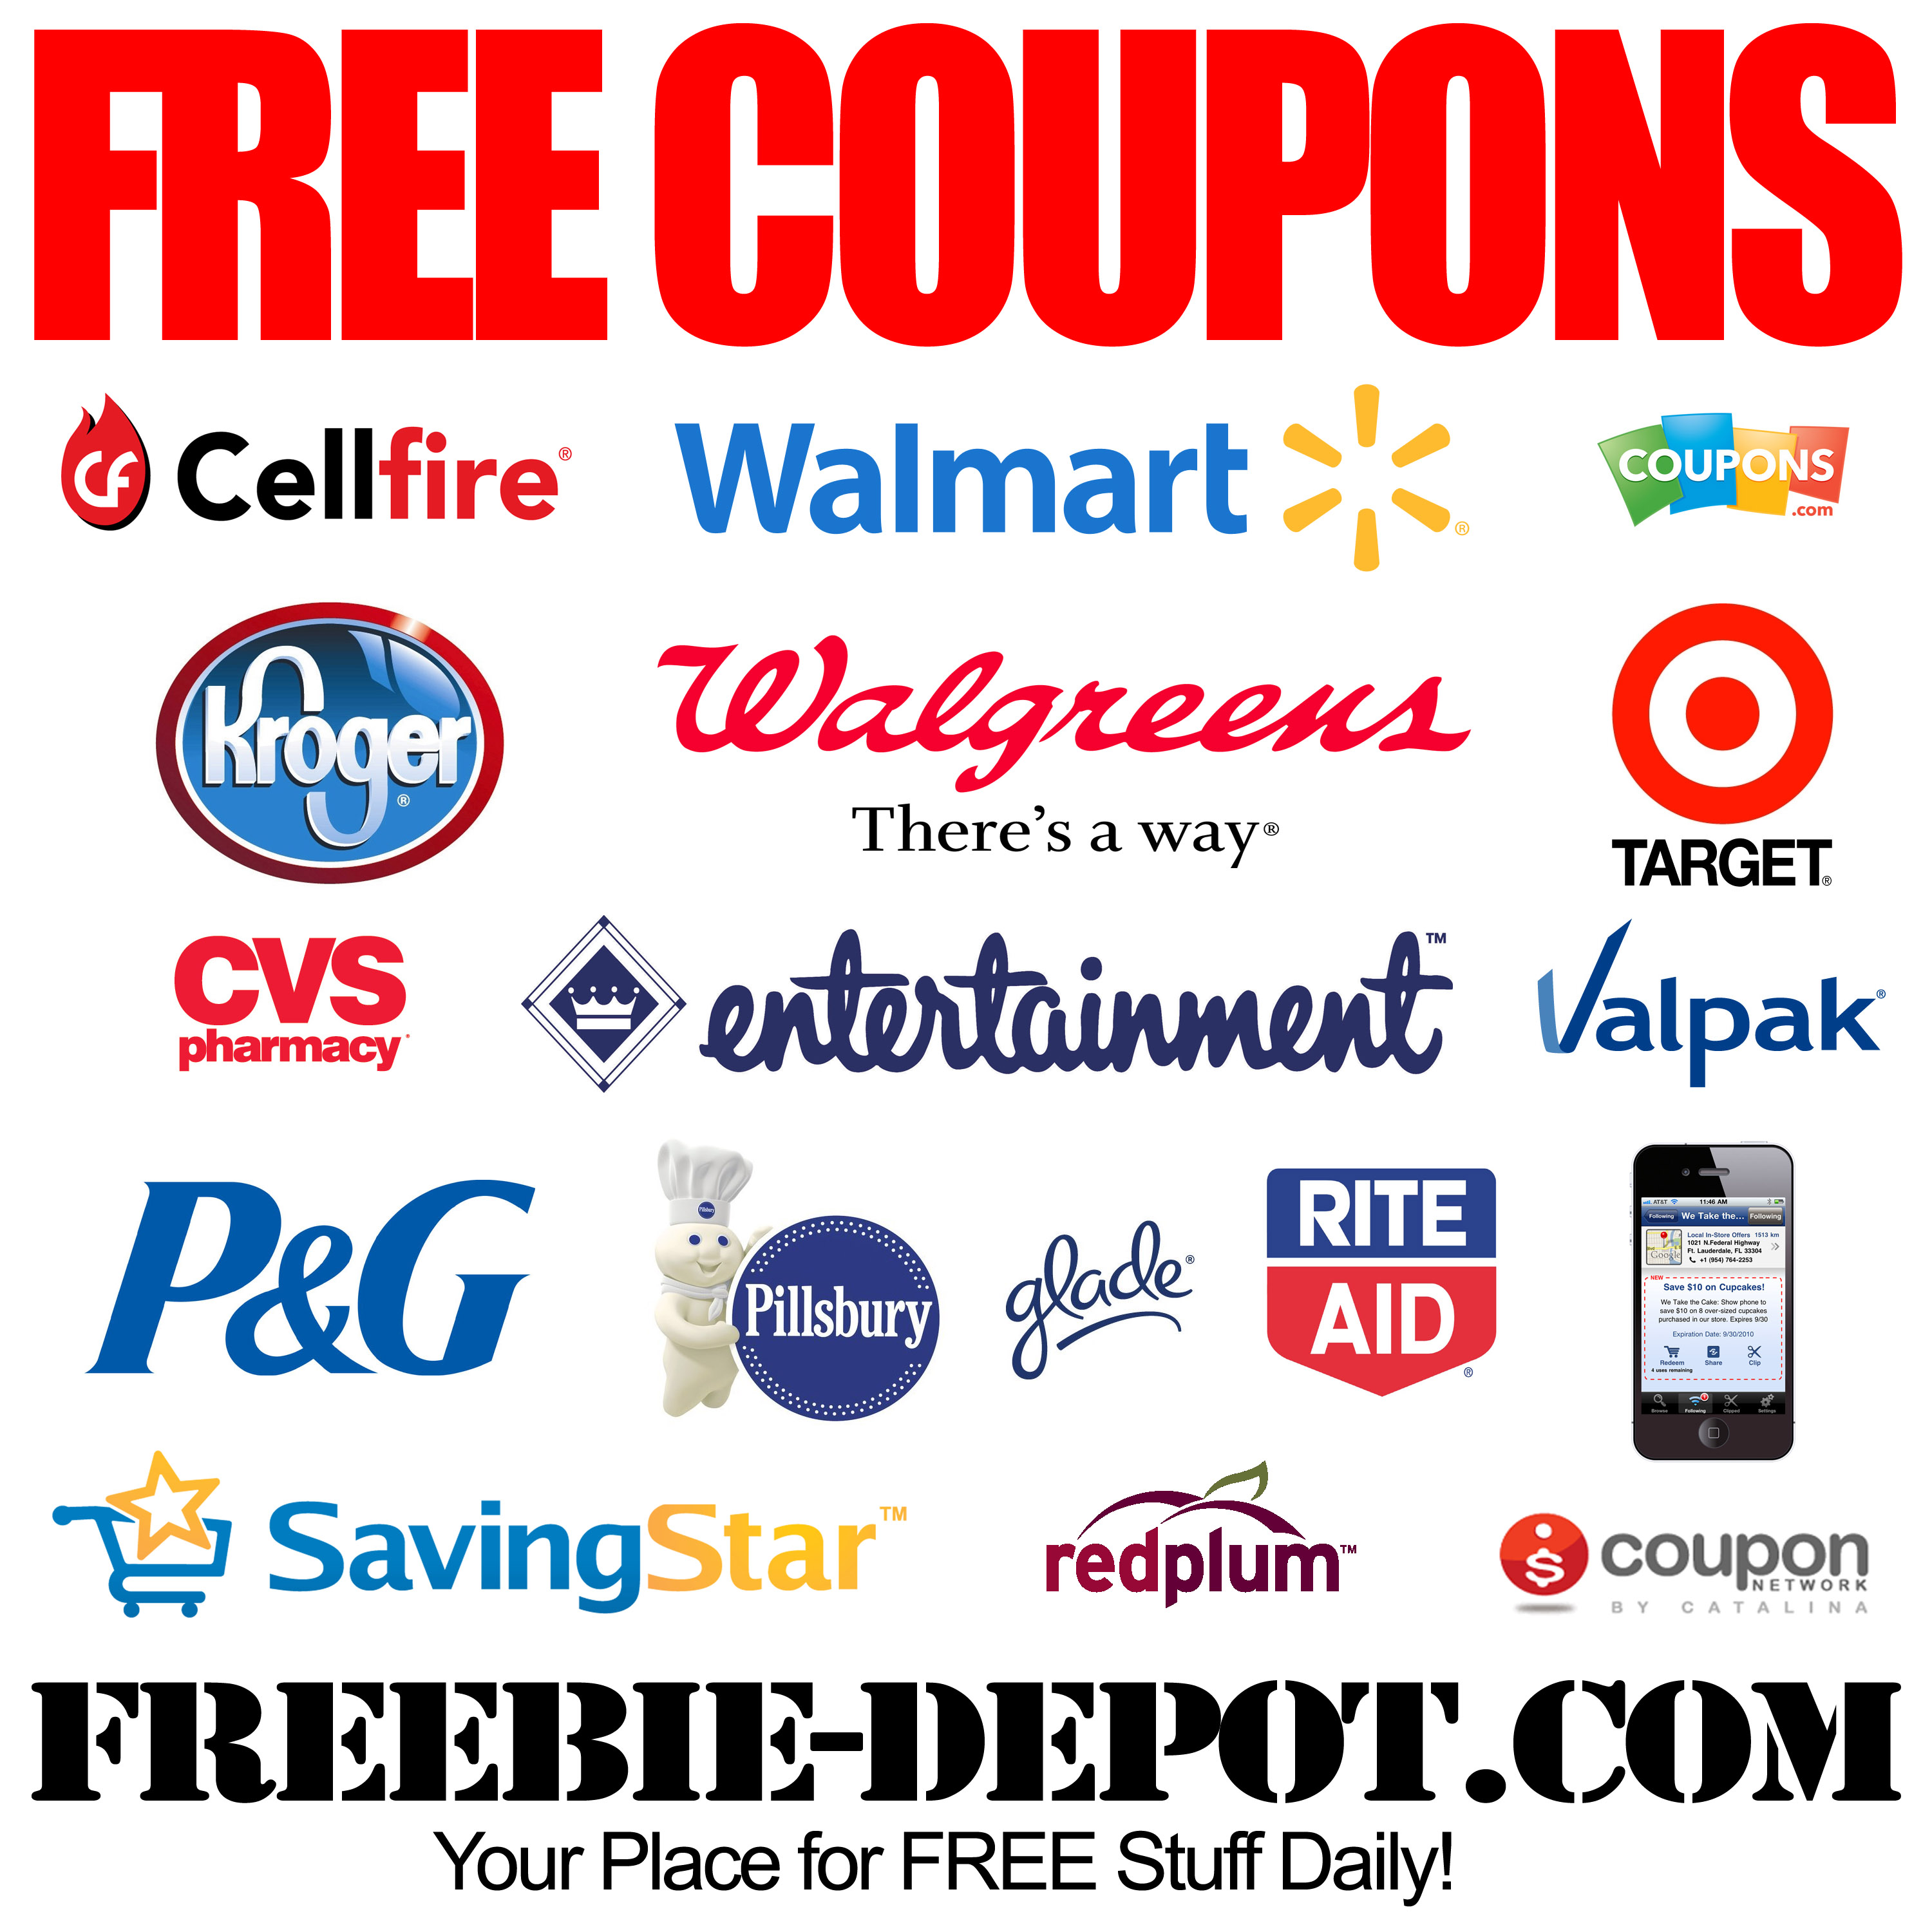 Free Download Printable Grocery Store Coupons From Coupon Network 3000x3000 For Your Desktop Mobile Tablet Explore 48 Wallpaper Warehouse Promo Code Wallpaper Warehouse Promo Code Wallpaper Warehouse Coupon Code